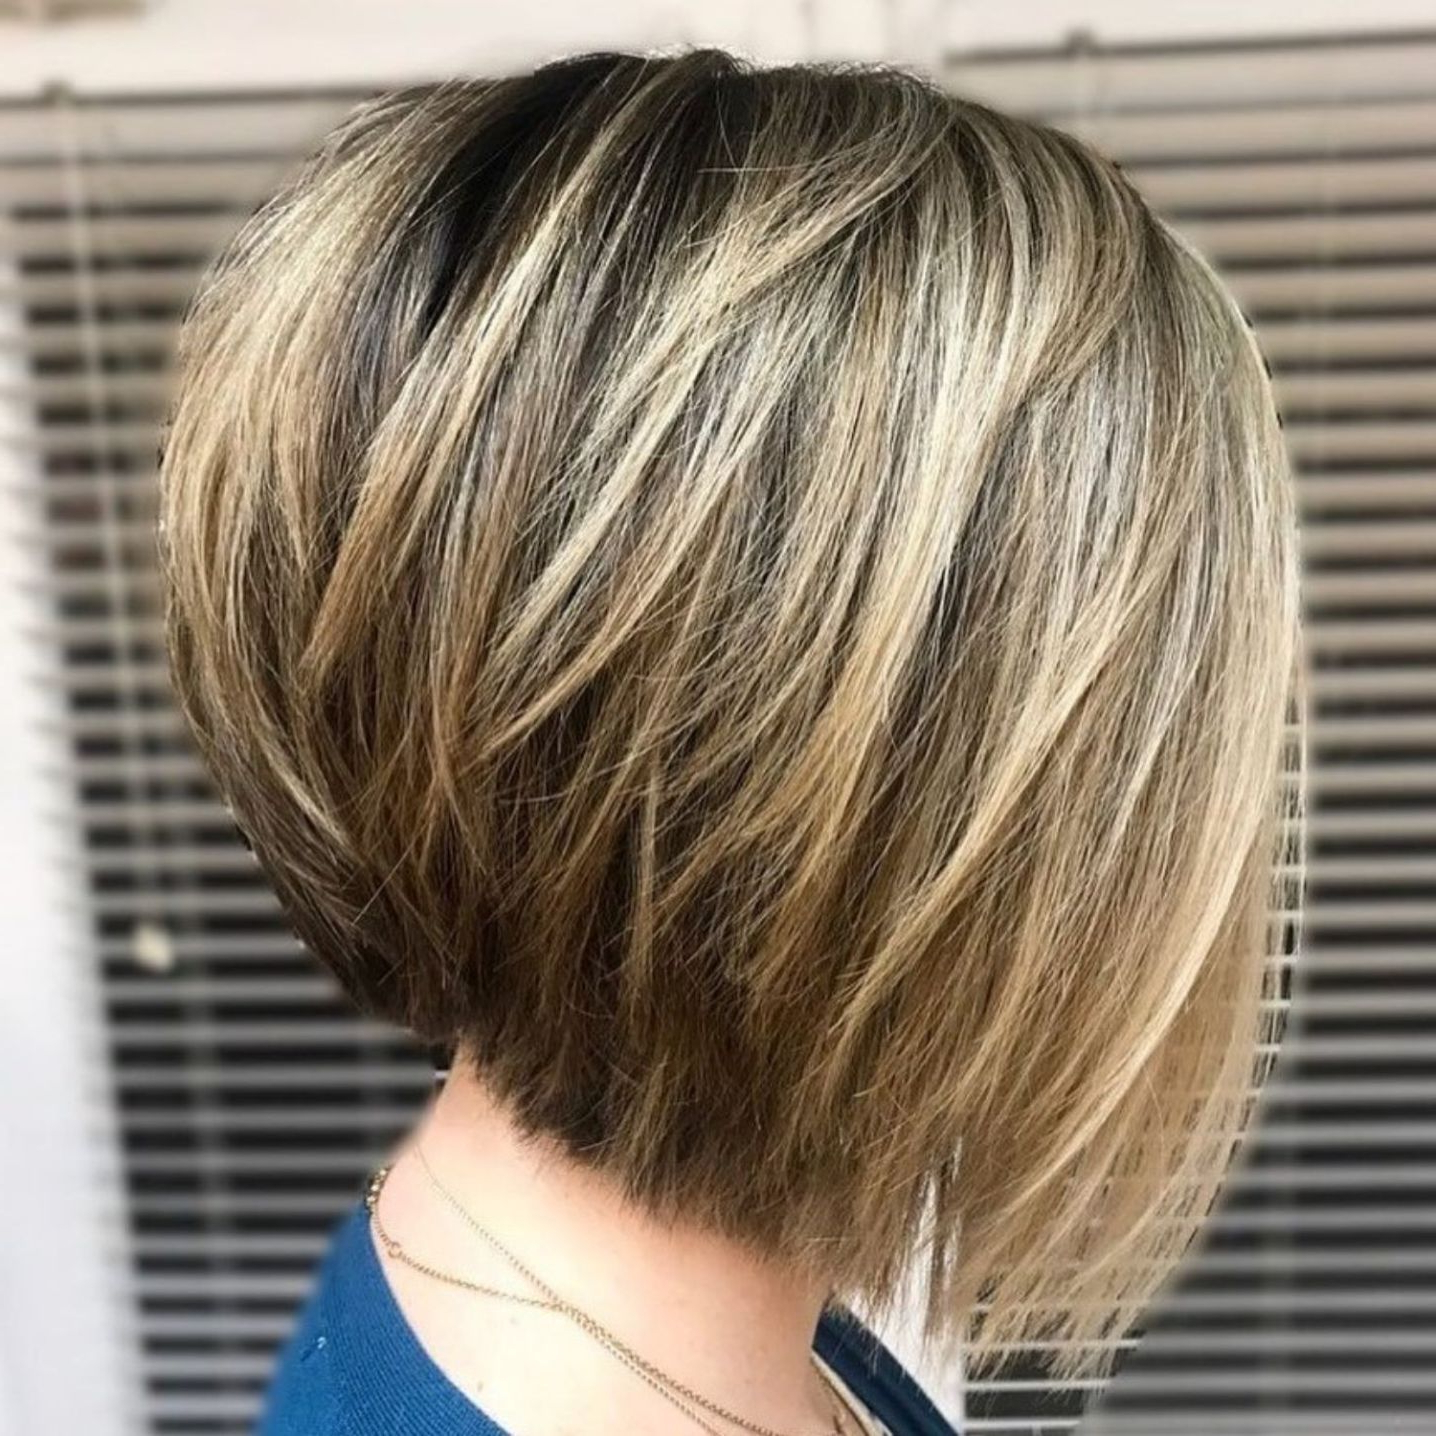 60 Layered Bob Styles: Modern Haircuts With Layers For Any Occasion Regarding Short Red Haircuts With Wispy Layers (View 10 of 20)